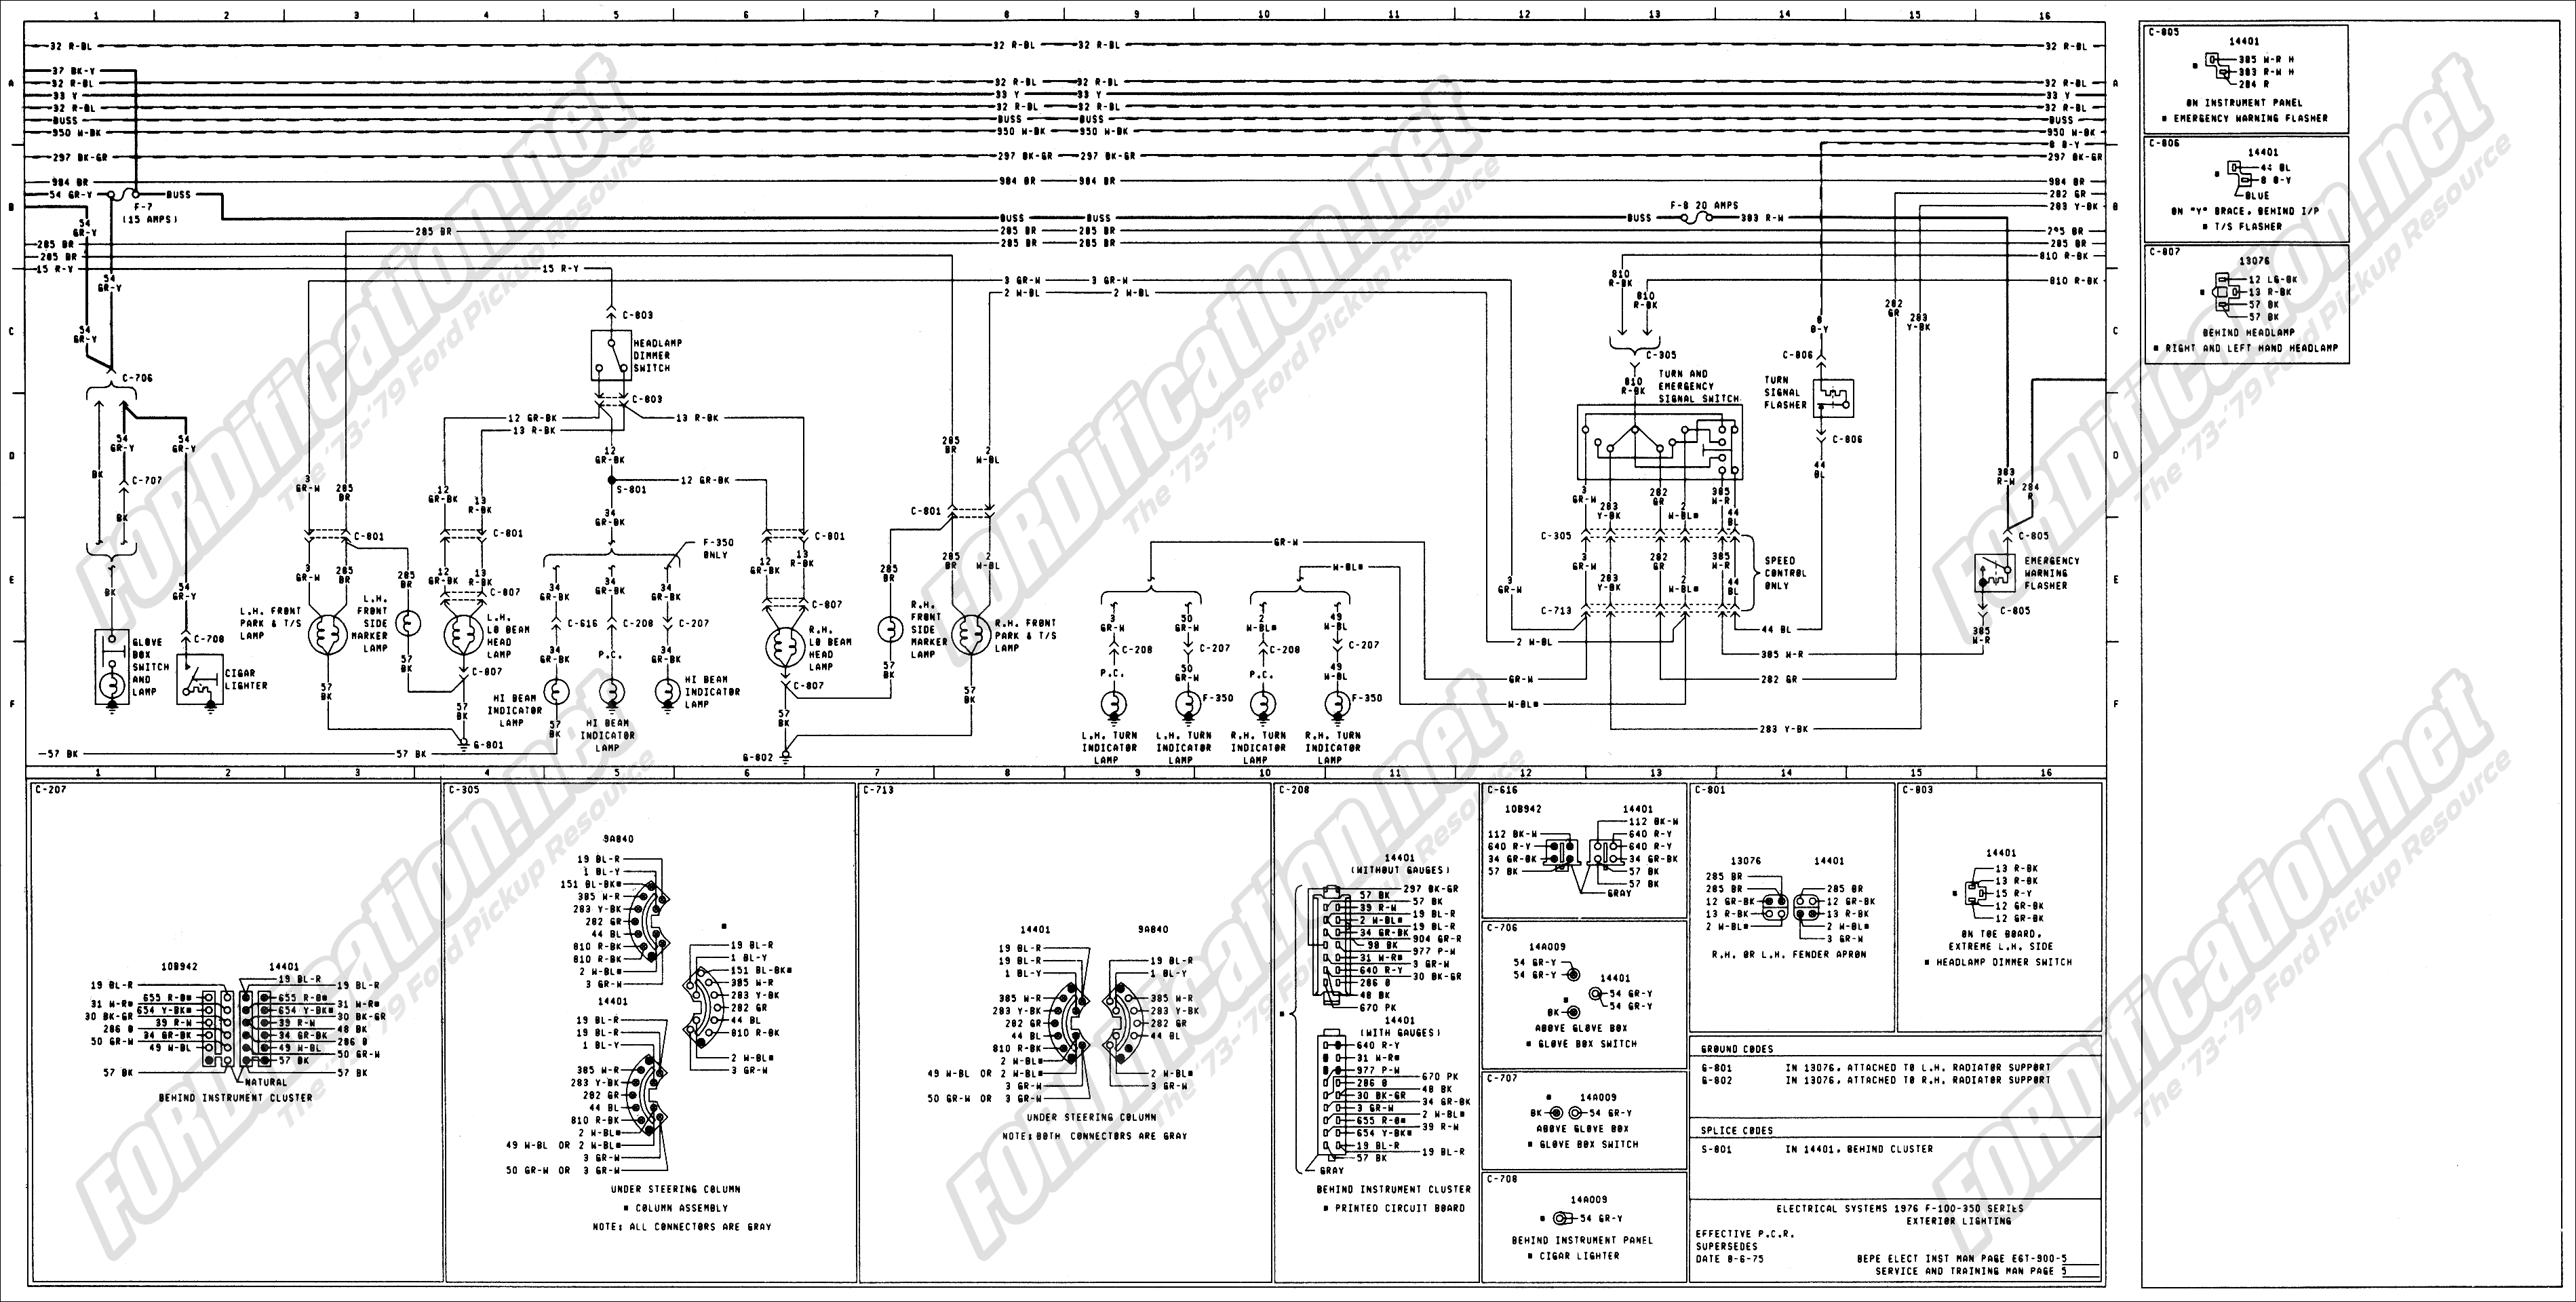 wiring_76master_5of9 1973 1979 ford truck wiring diagrams & schematics fordification net wiring diagram for ford f150 2004 radio at edmiracle.co